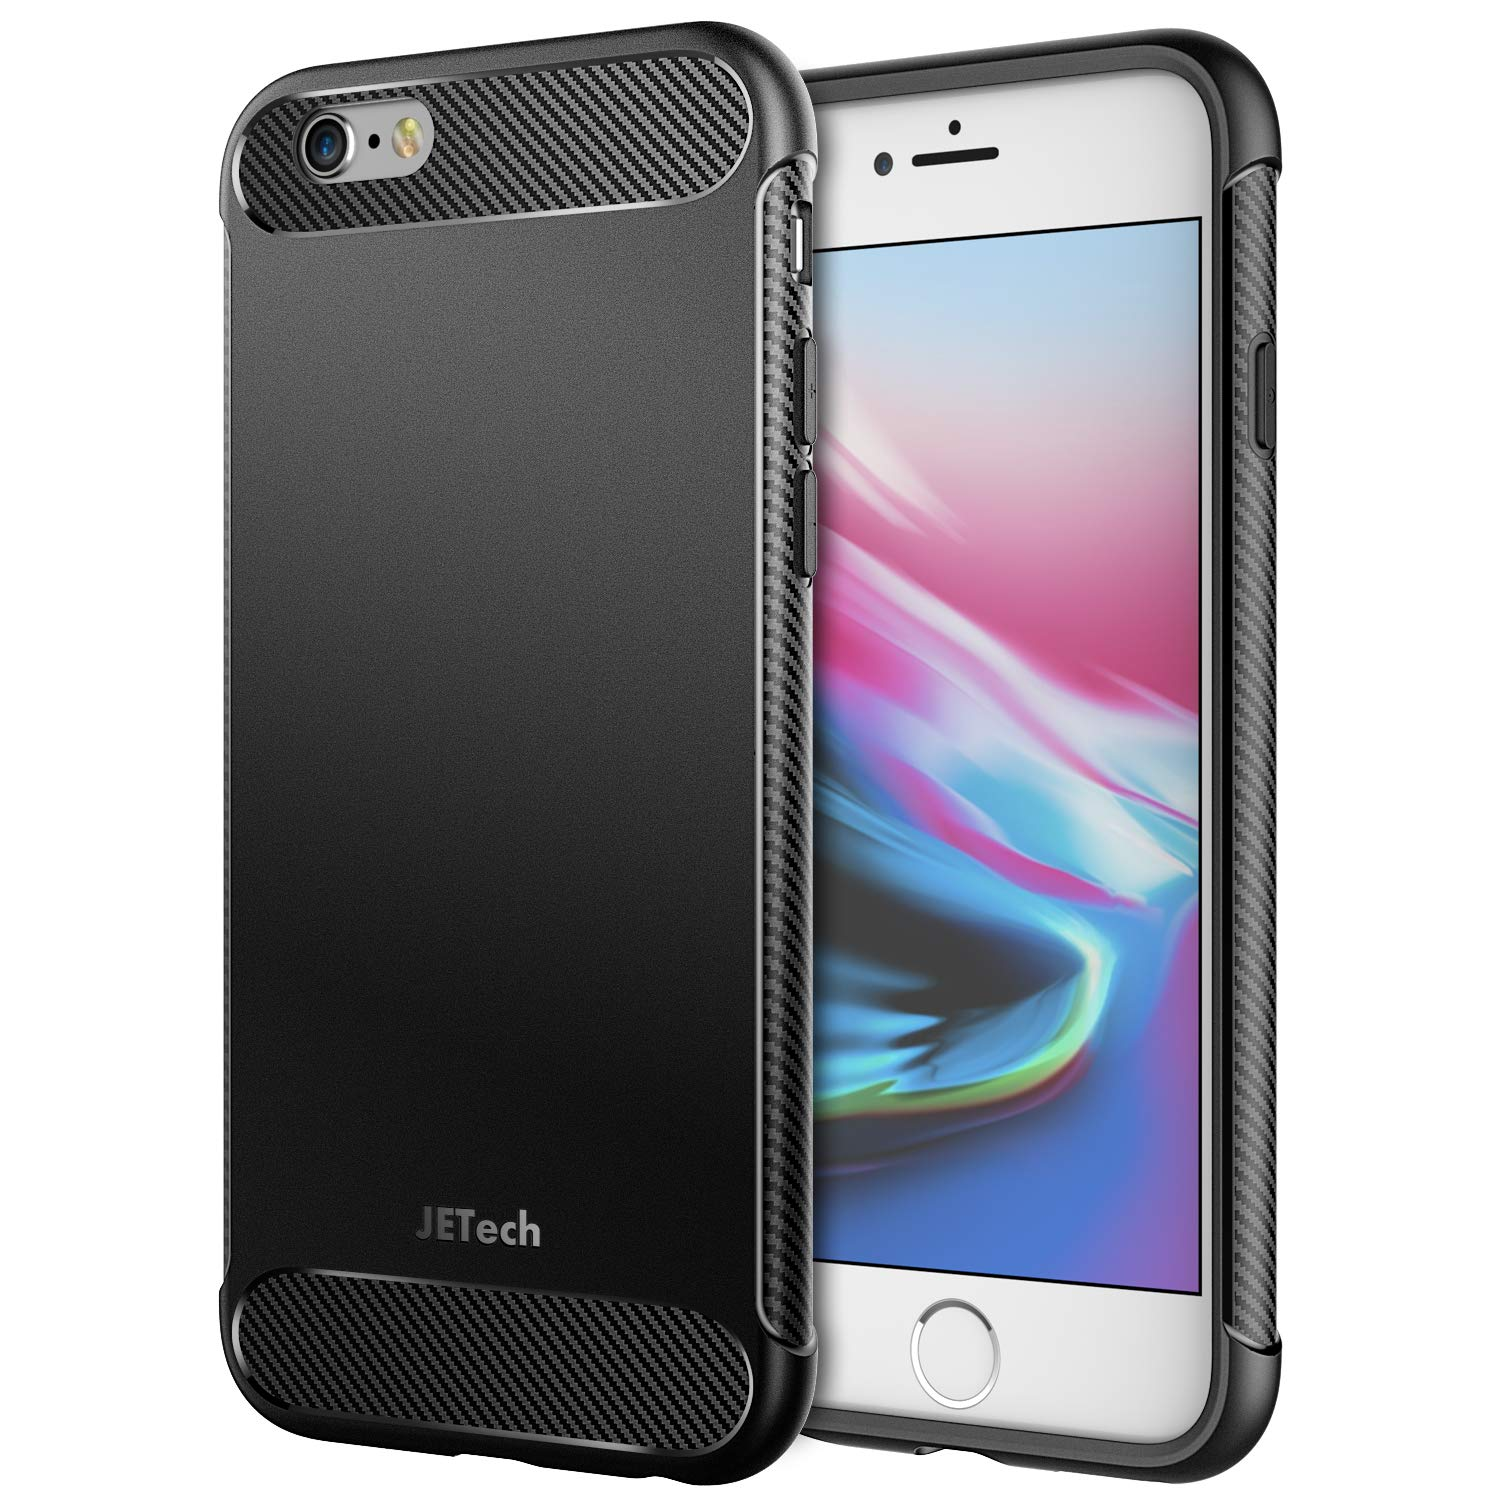 JETech Case for iPhone 6s and iPhone 6, Protective Cover with Shock-Absorption and Carbon Fiber Design, Black